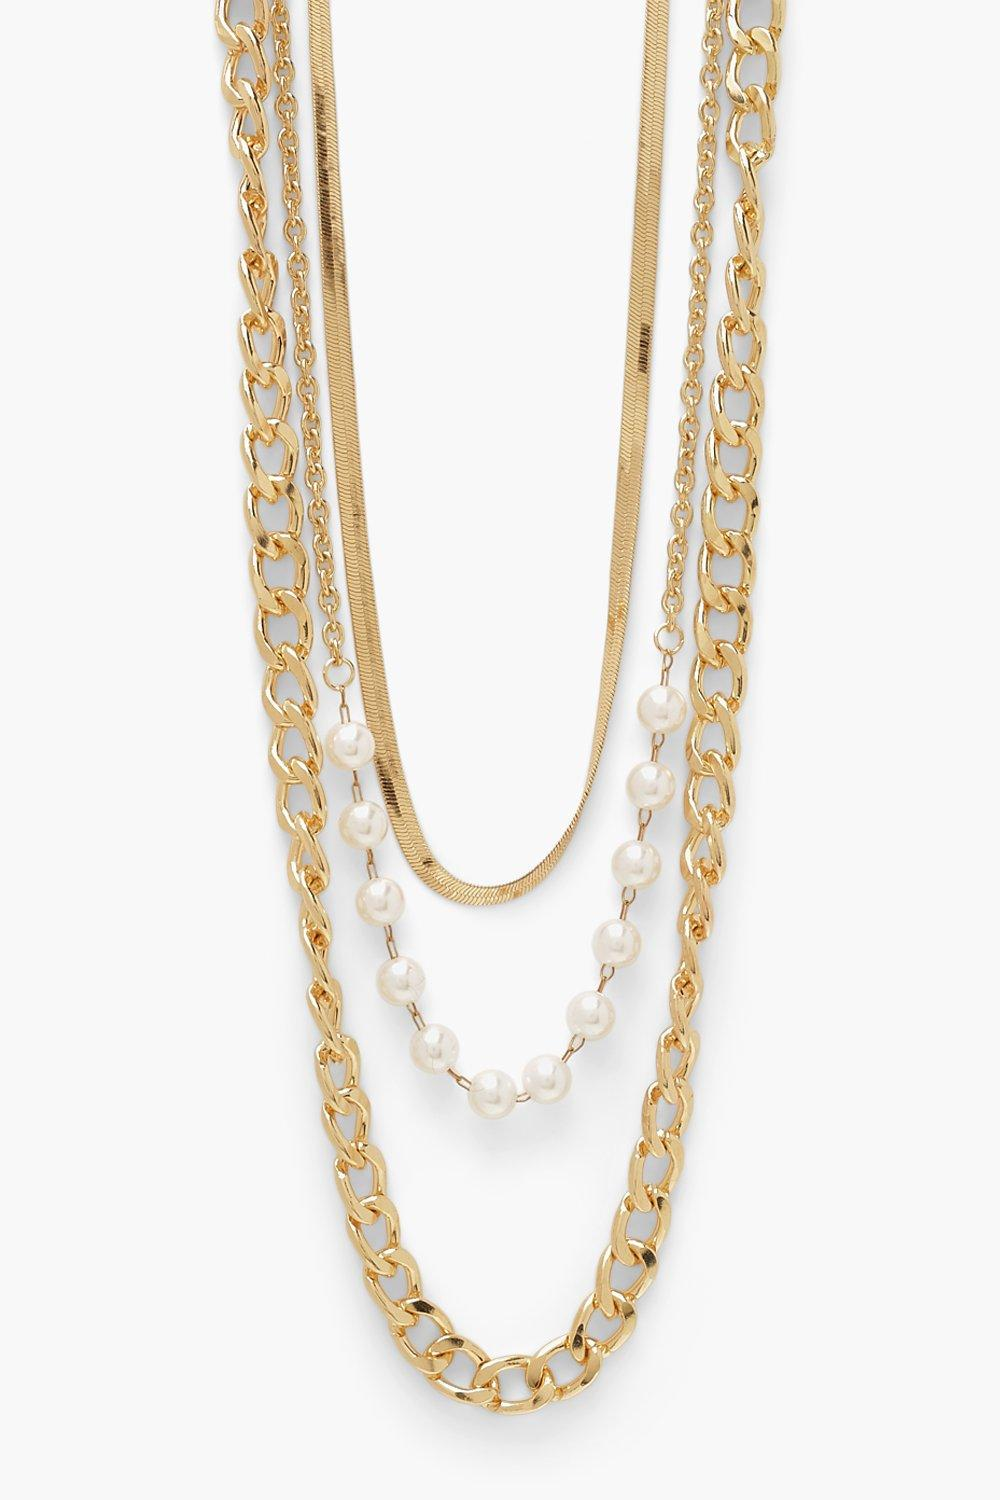 Boohoo Flat And Chunky Chain Pearl Necklace 3 Pack